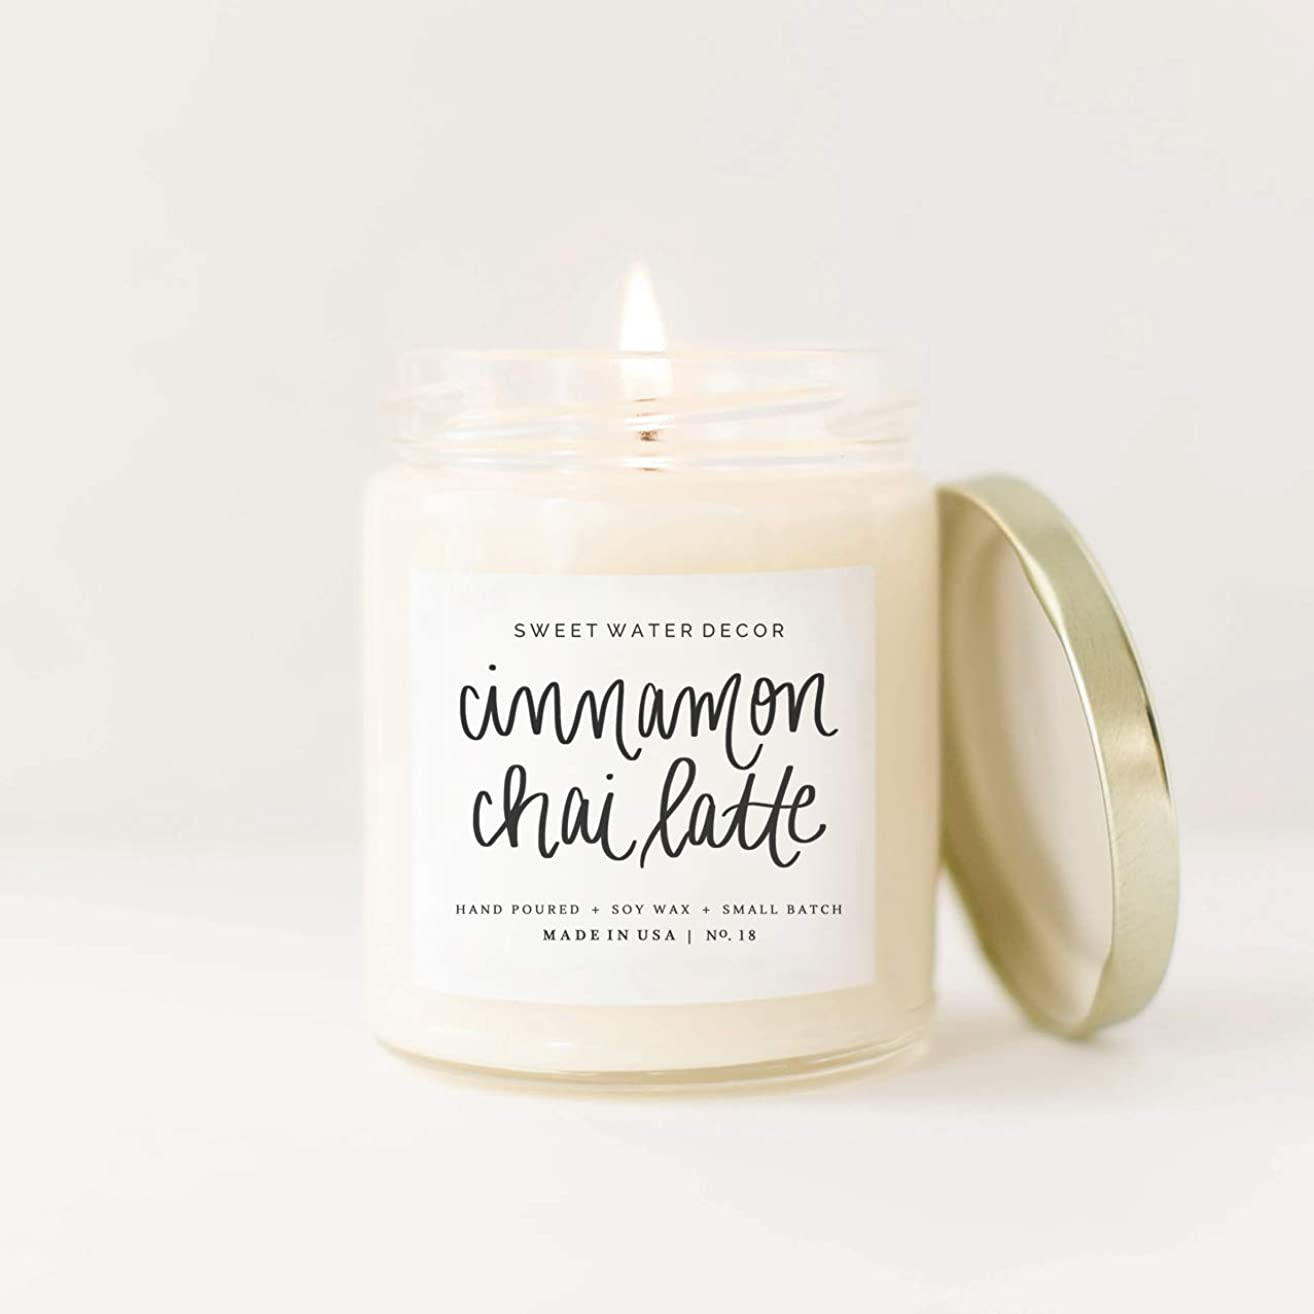 Cinnamon Chai Latte Natural Soy Wax Candle | Sweet Black Tea Vanilla Clove Bud Orange Essential Oils Fall Scent Gluten Free American Grown French Country Rustic Farmhouse Decor Bathroom Accessories